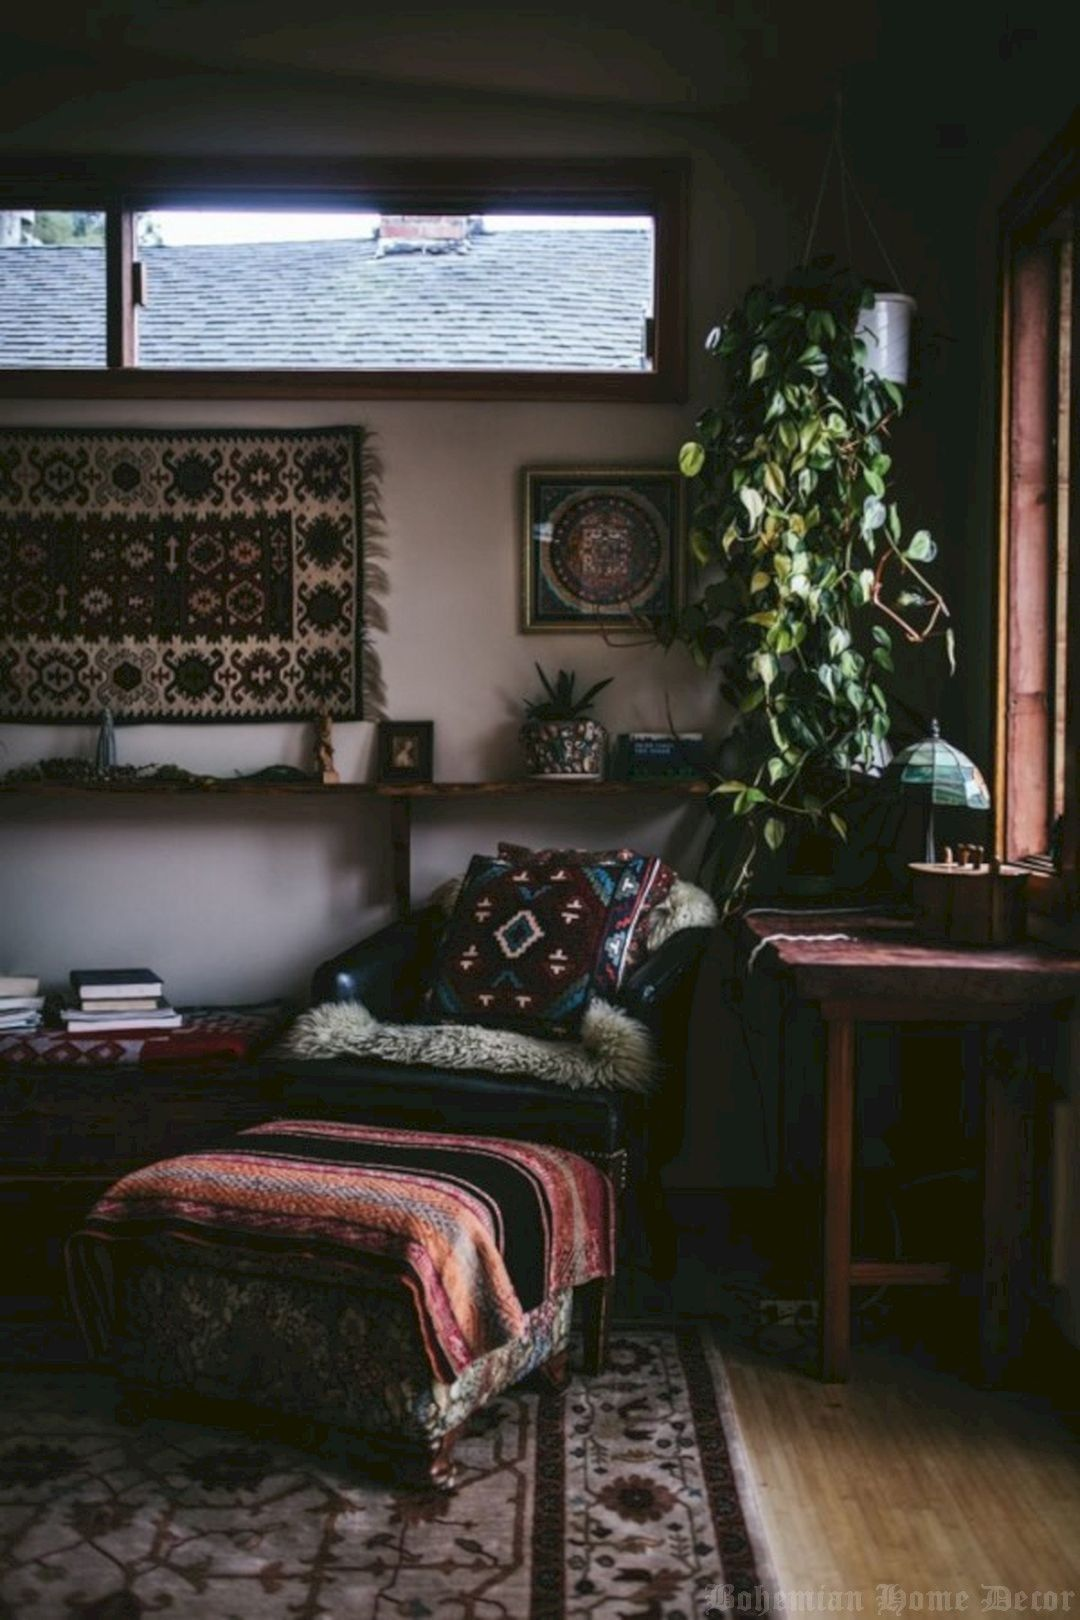 Here, Copy This Idea on Bohemian Home Decor Oct 2020